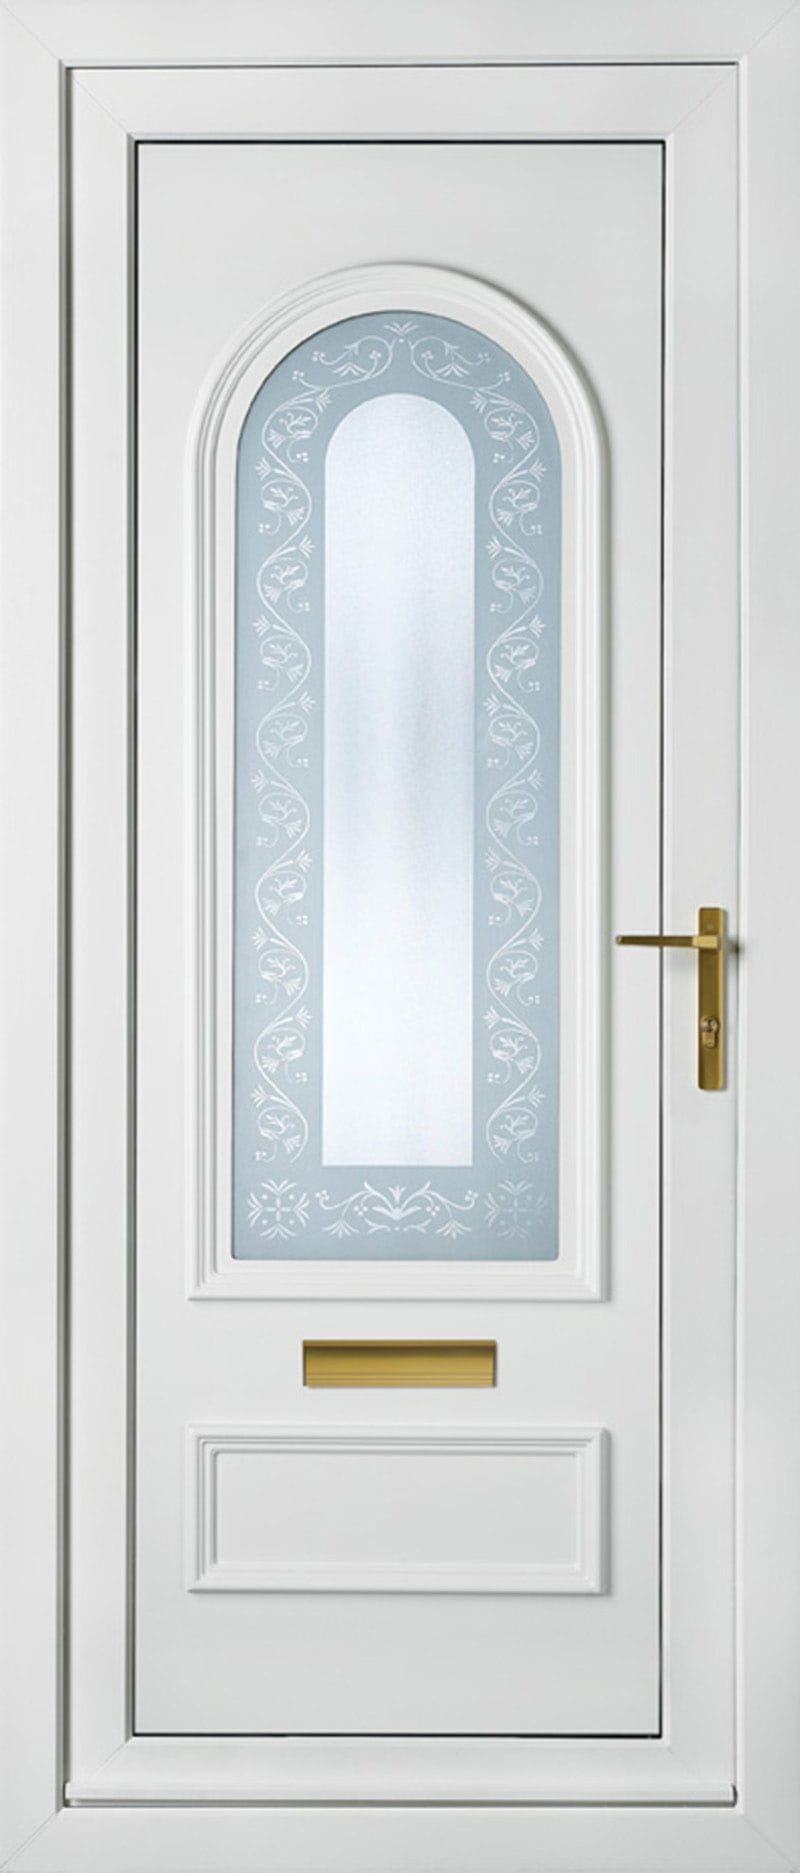 Pvc Doors And Decorative Panels Dorset Windows Ltd